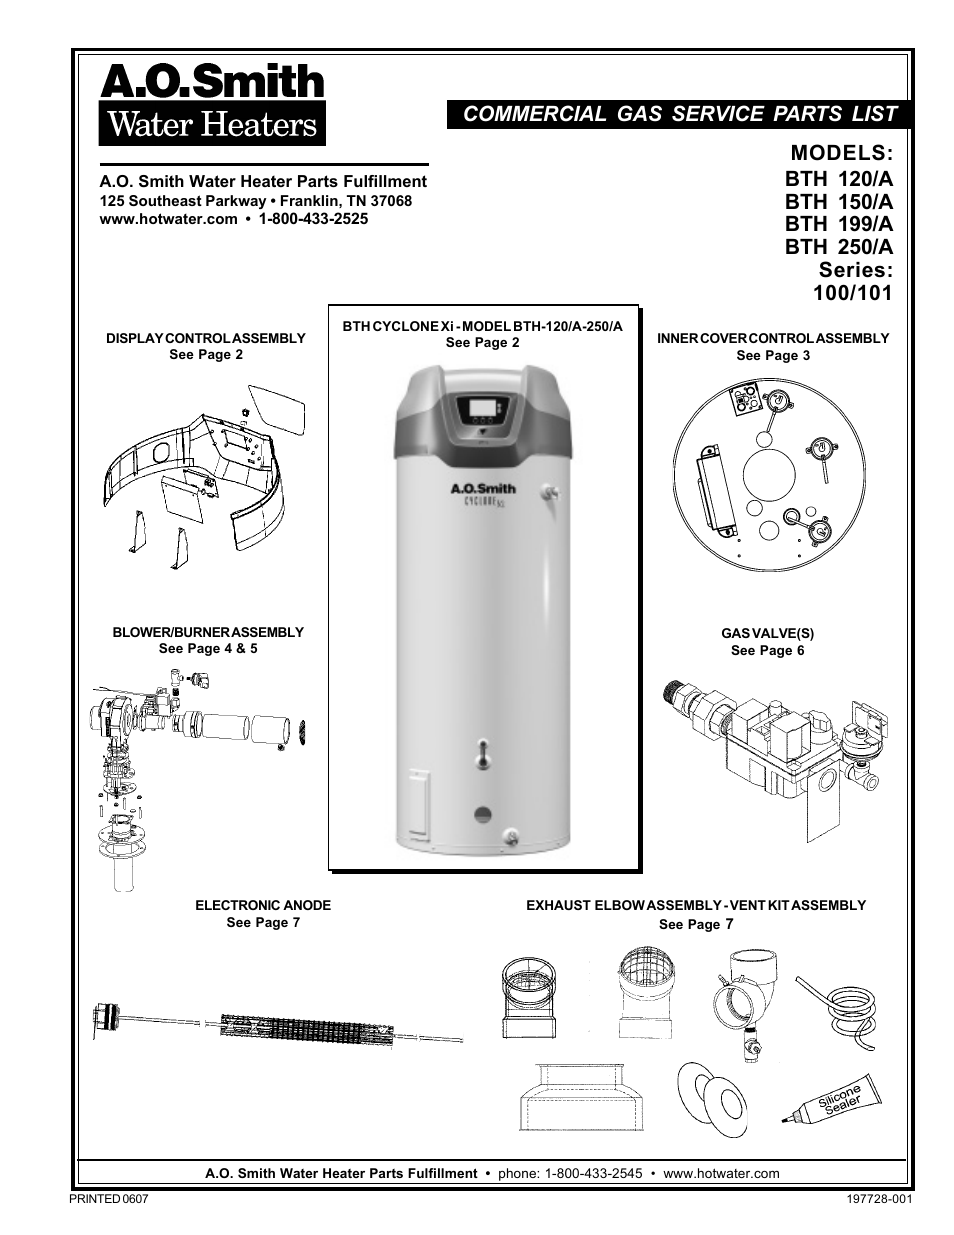 [DIAGRAM] Ts 800 Parts Manual Diagram FULL Version HD